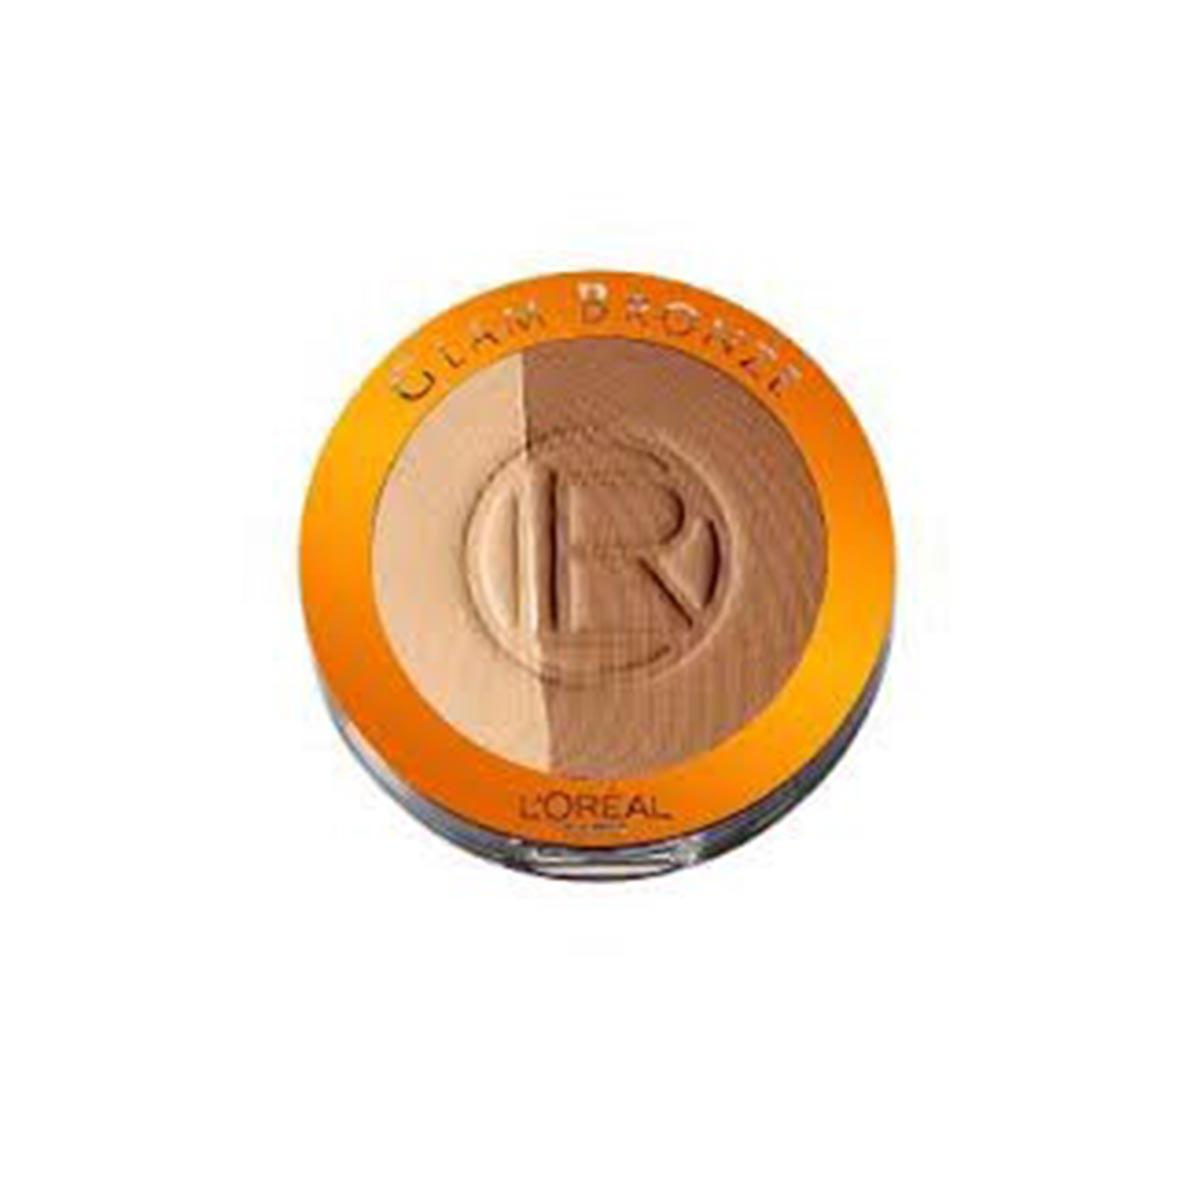 L´oreal fragrances Glam Bronze Powder Duo 102 Brunette